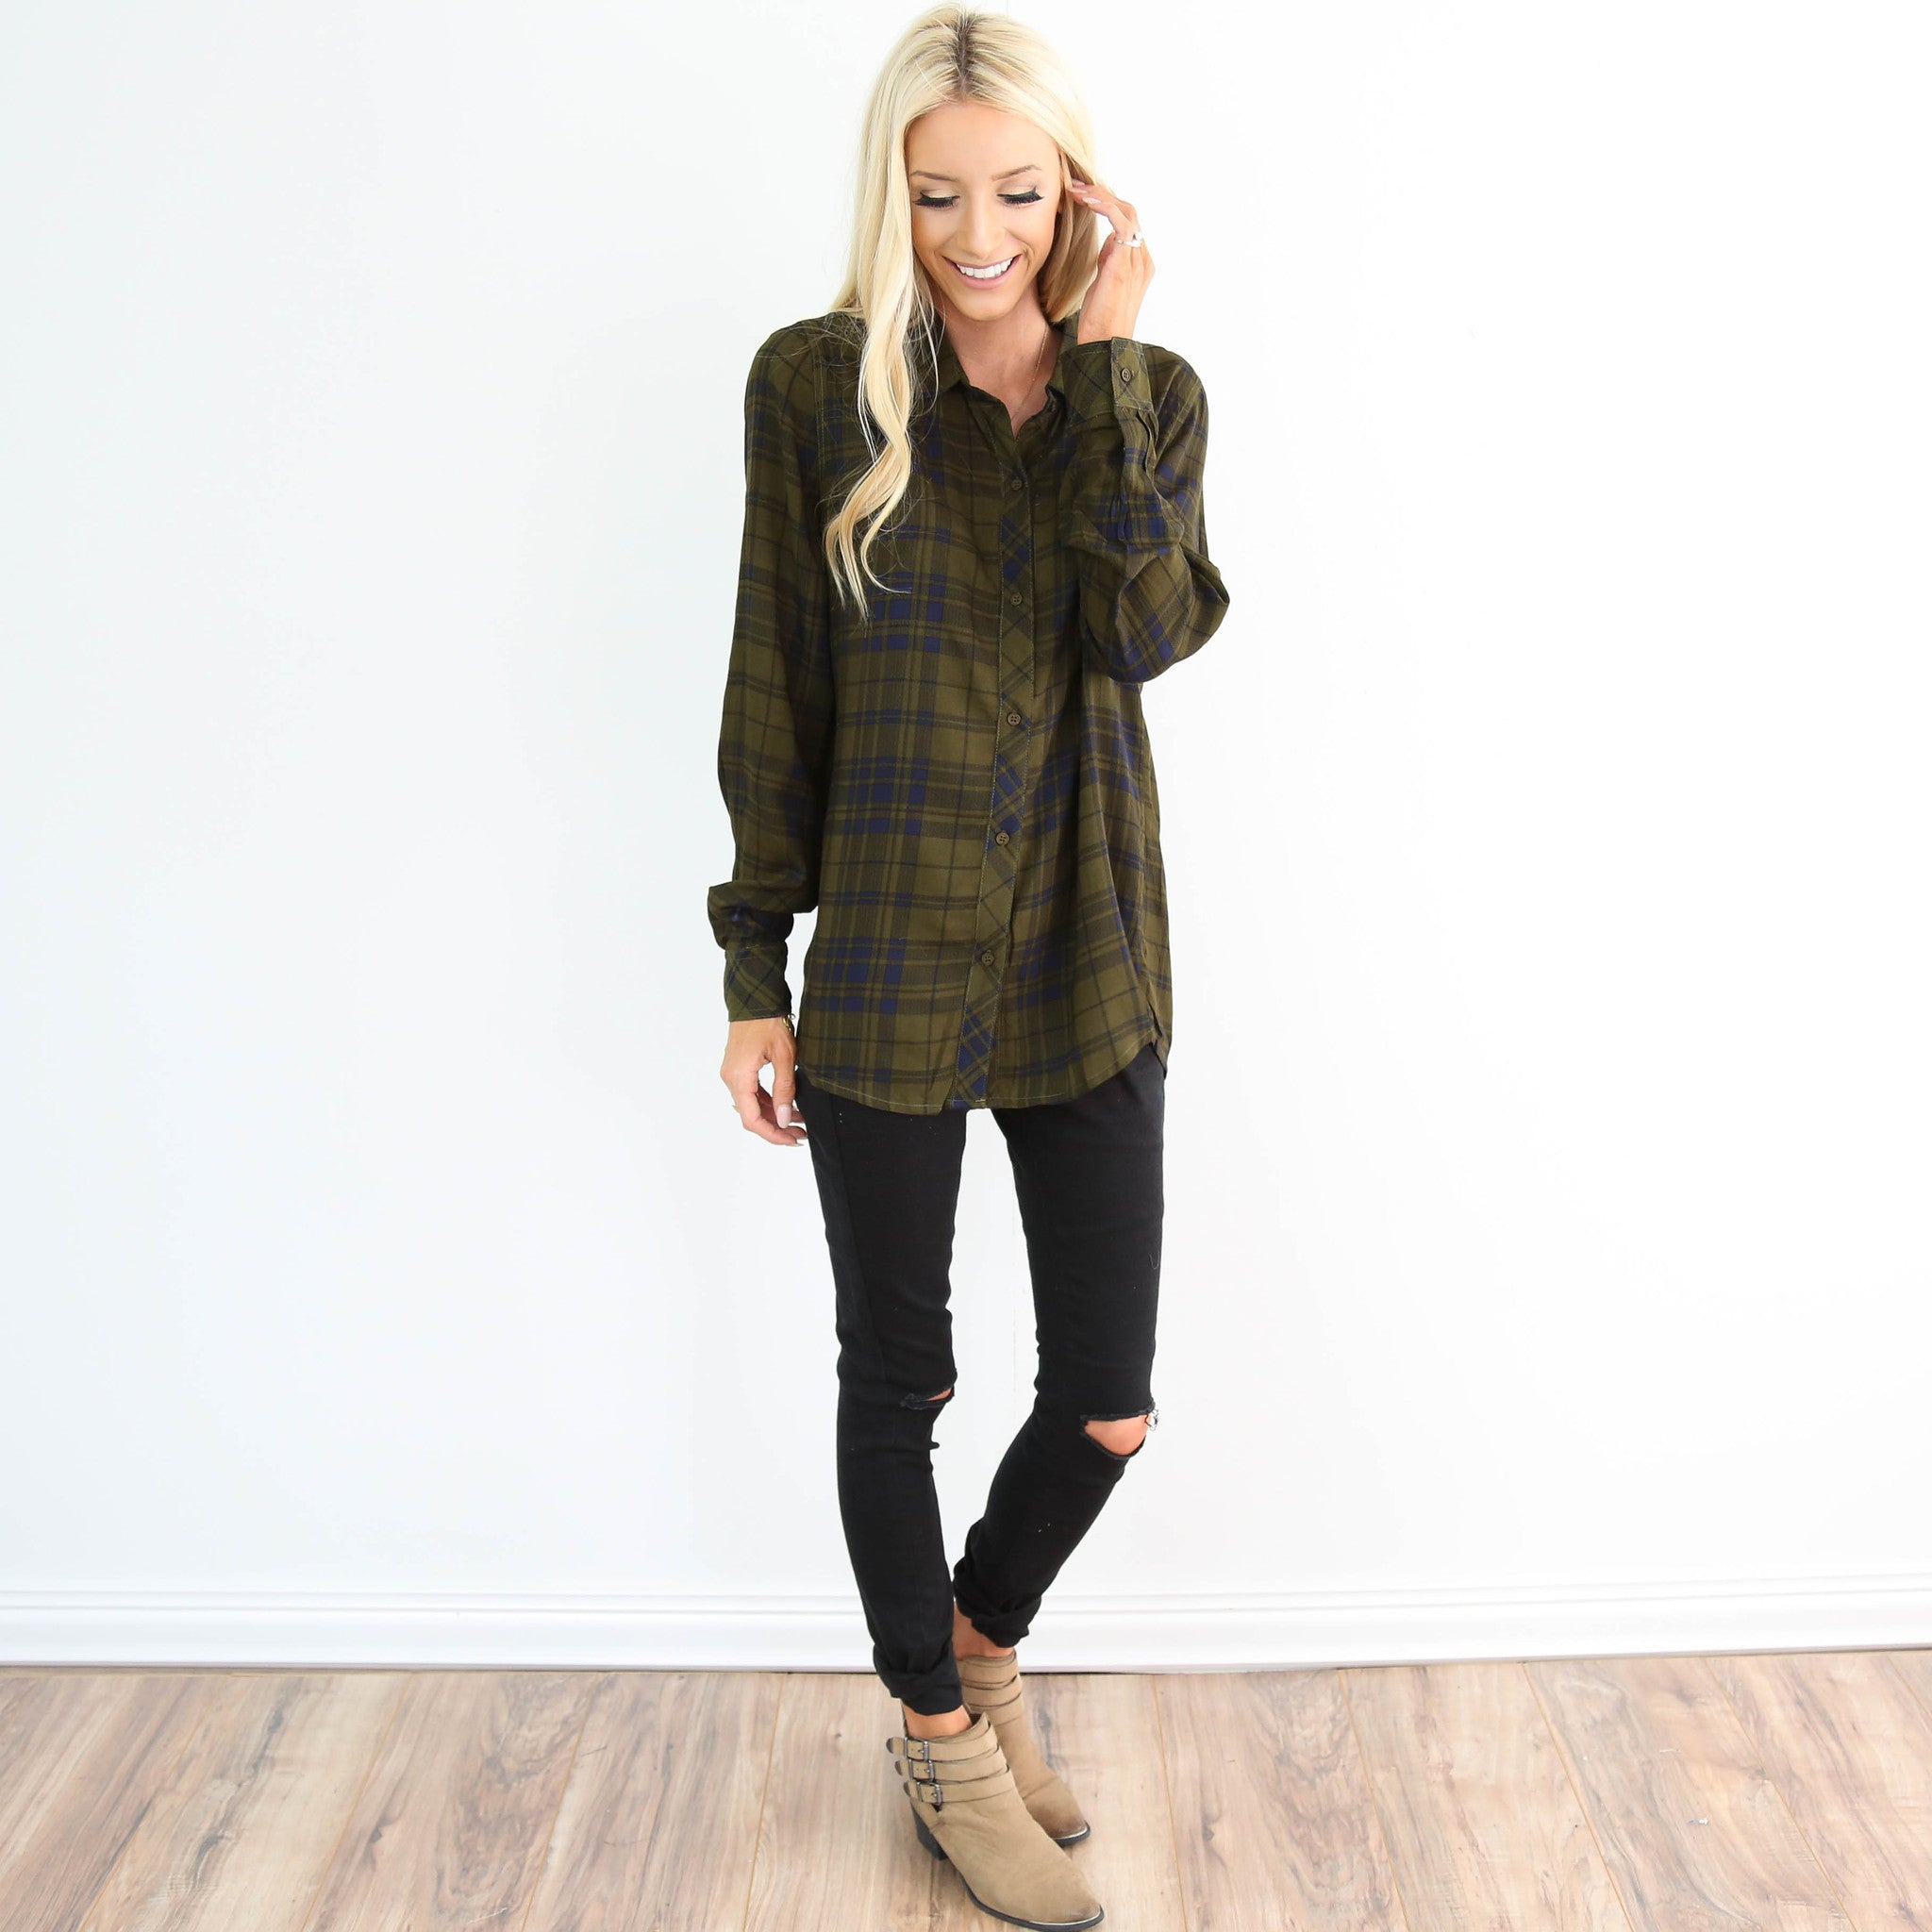 Sherwood Plaid Top in Olive